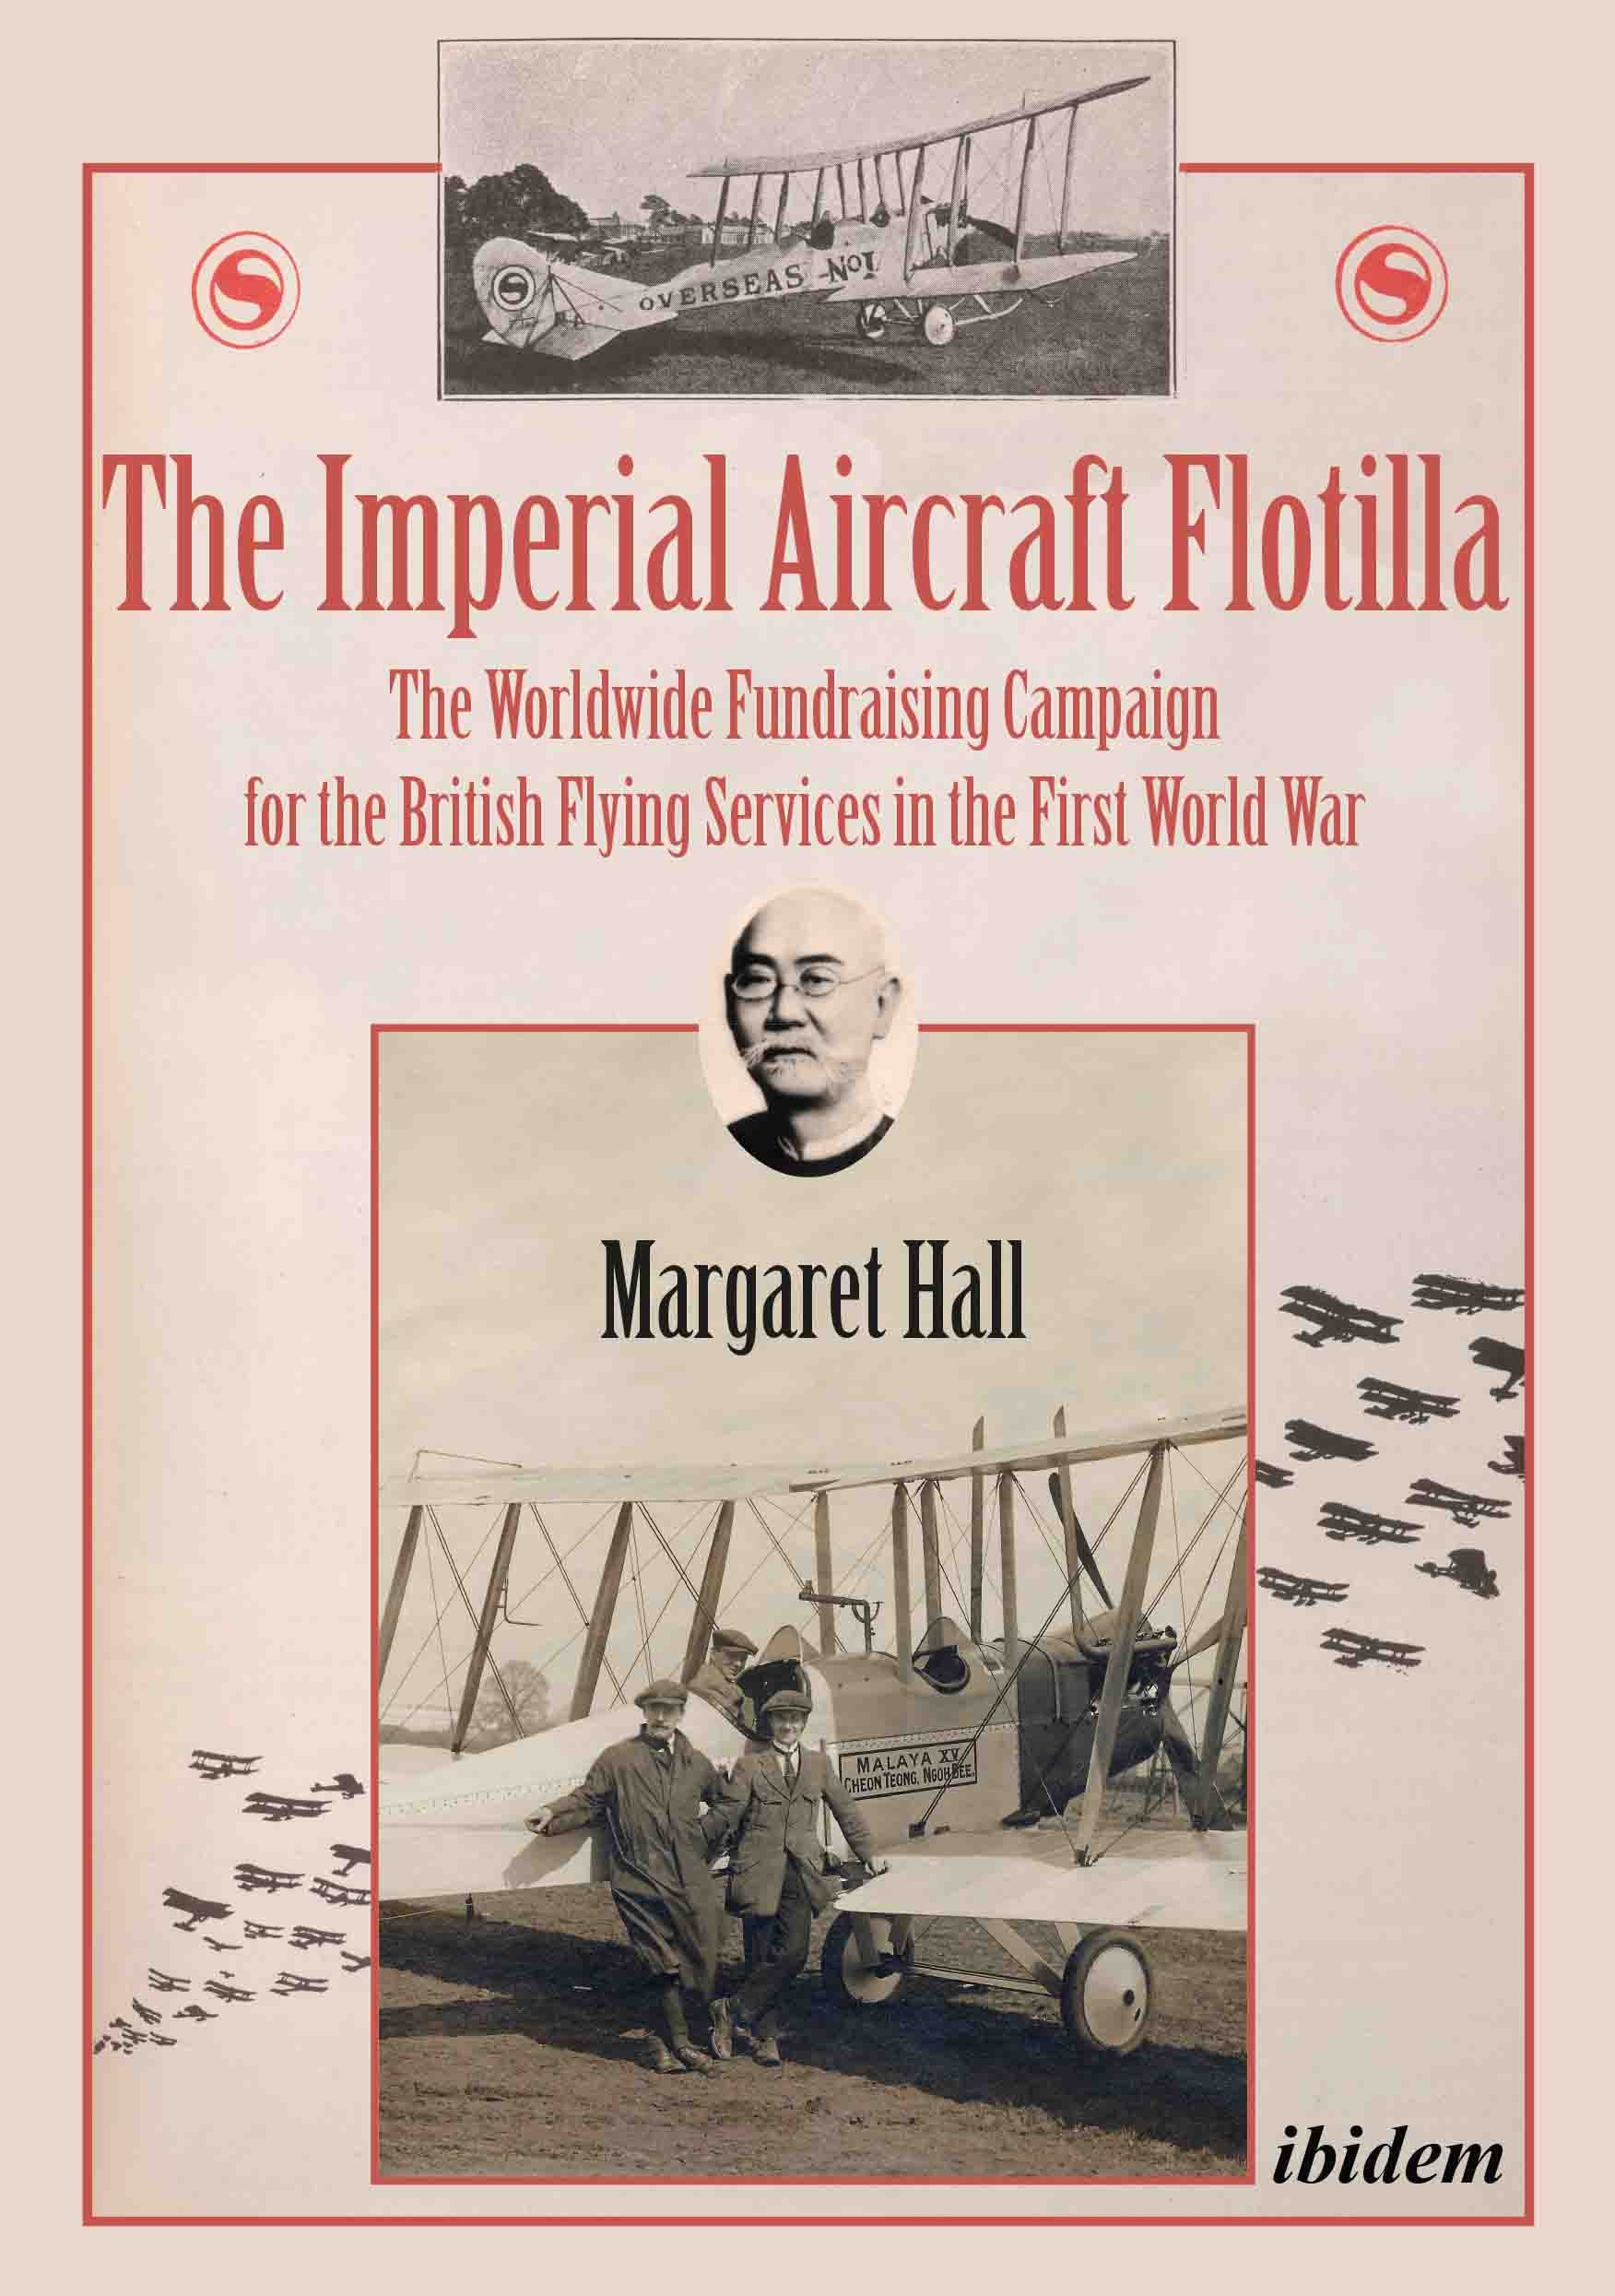 The Imperial Aircraft Flotilla